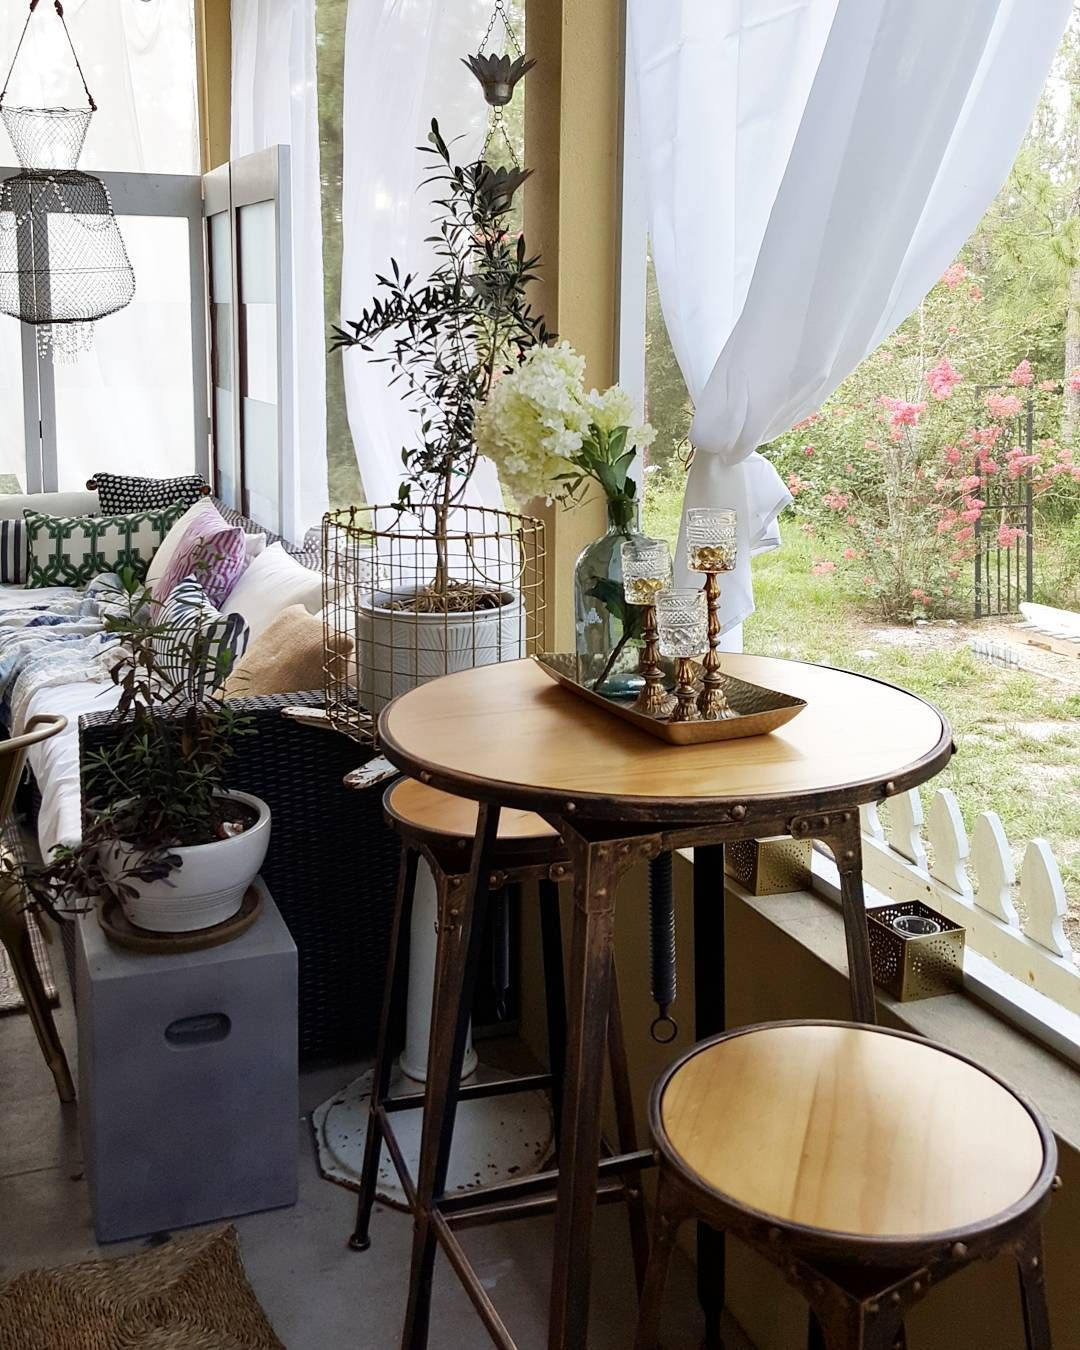 Outdoor Patio Seating IdeasSummer Porch Industrial Farmhouse Table And Stools